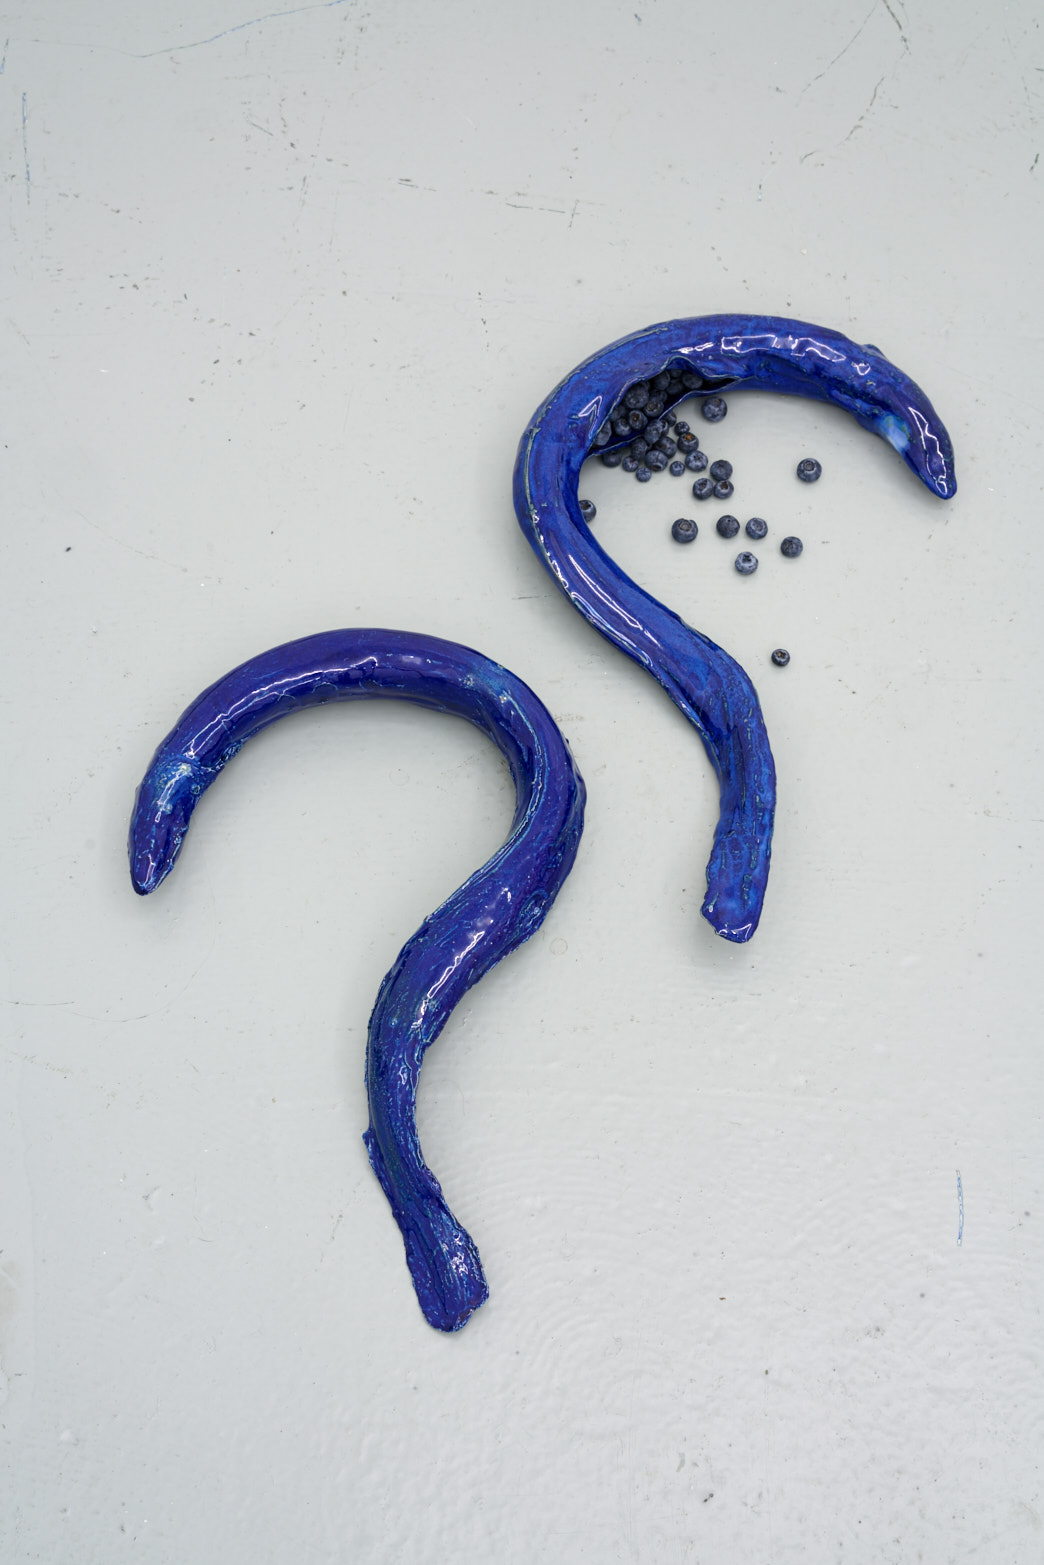 Paloma Proudfoot, The Anthropophagous Stage, 2018, Glazed stoneware, blueberries